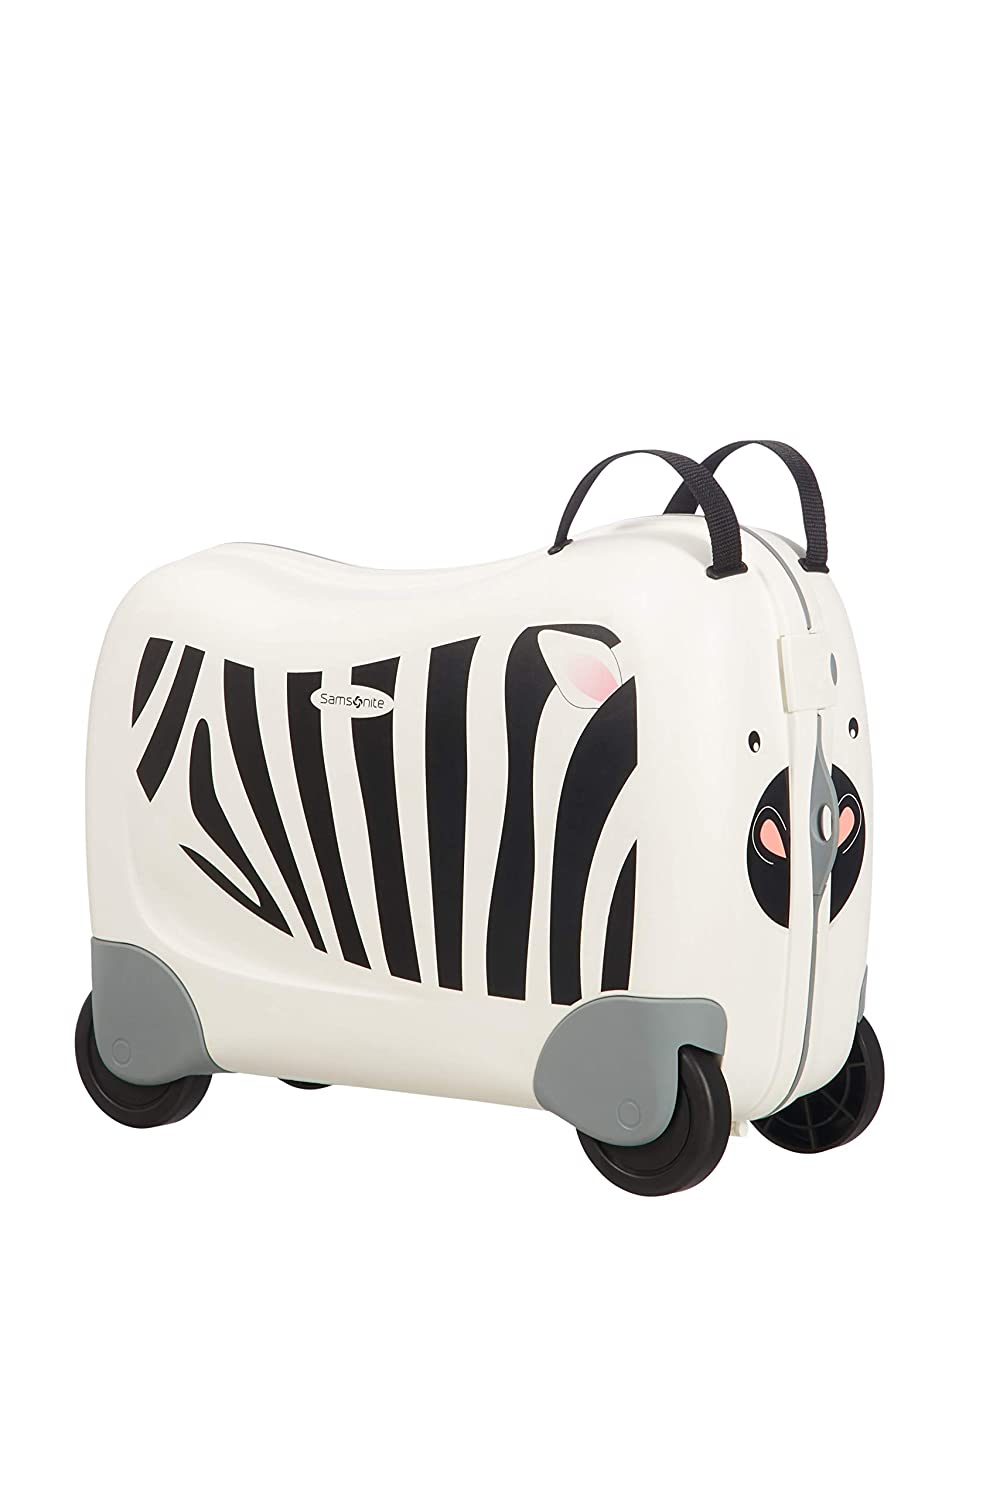 Kinderkoffer zum Sitzen - Samsonite Dream Rider Suitcase